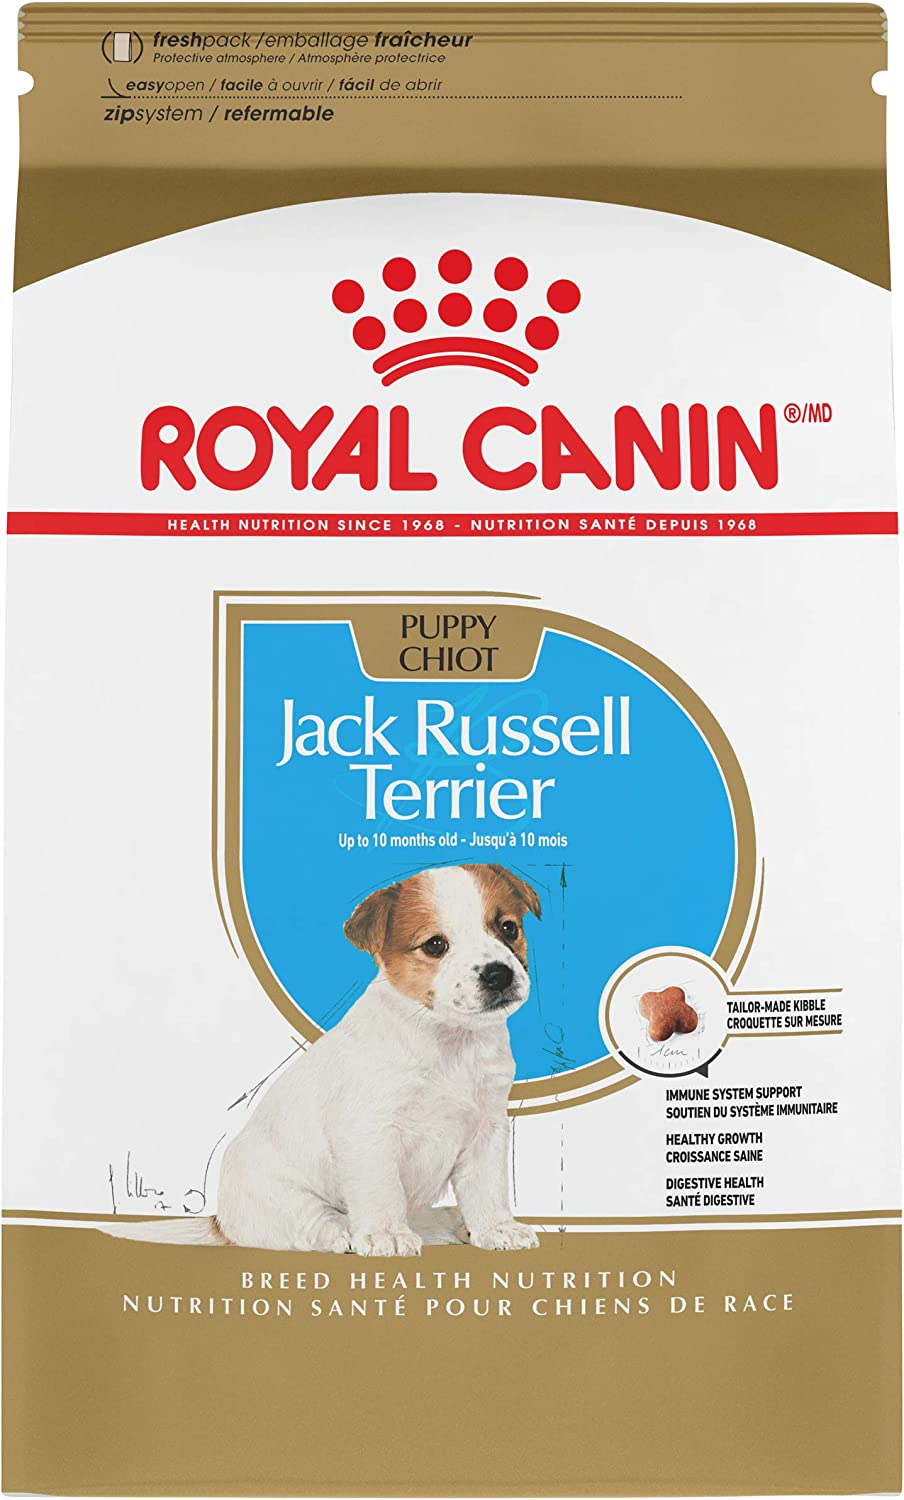 Royal Canin for Russell Terrier